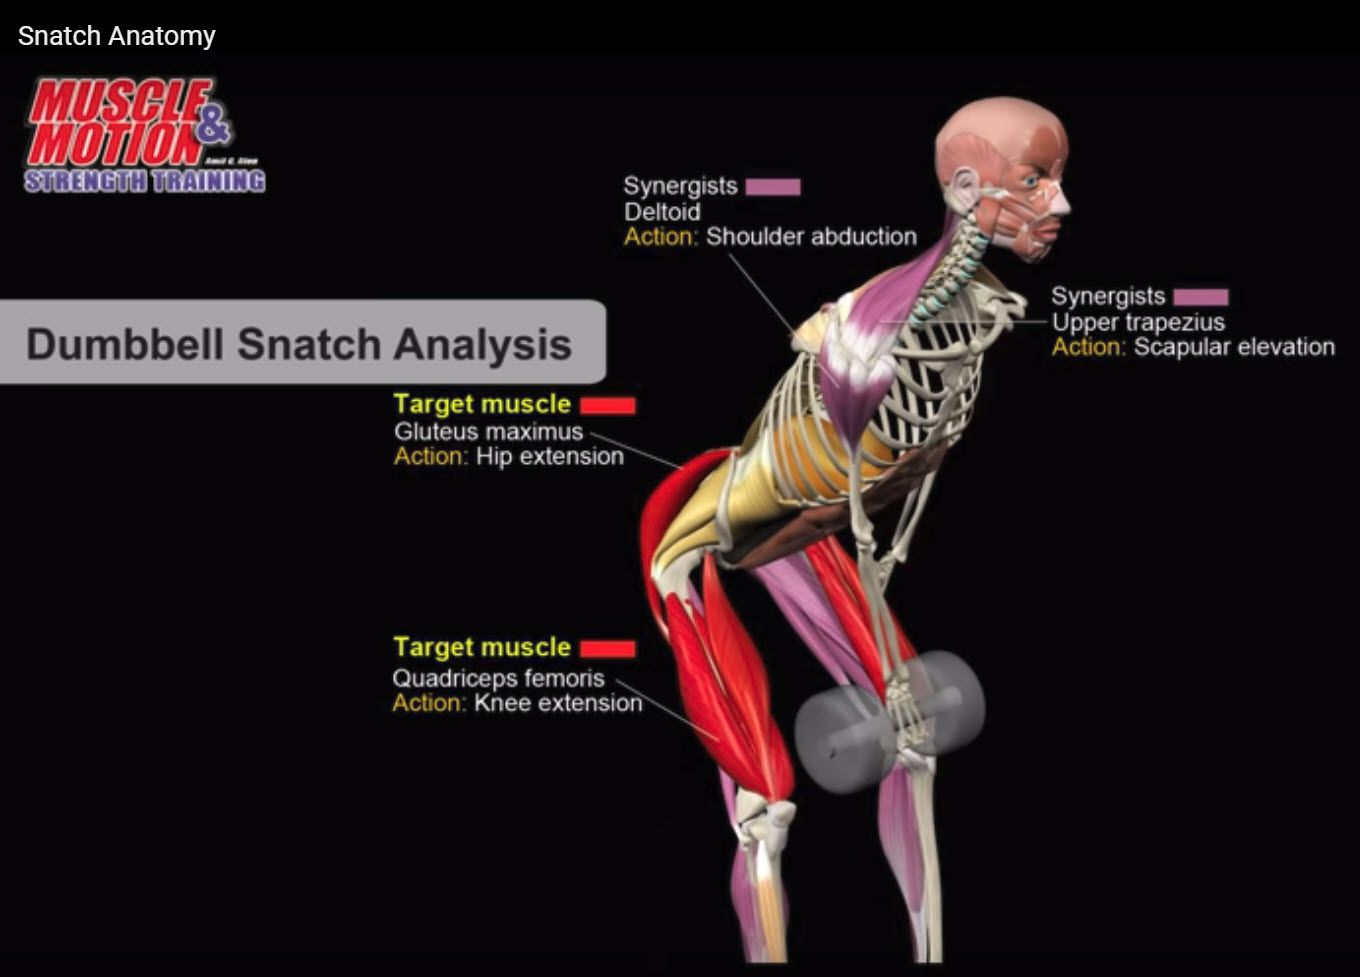 Show trainees which muscles are stimulated during exercise, and illustrate perfect form and technique. Learn crucial nuances for every exercise through our unique library of educational videos.